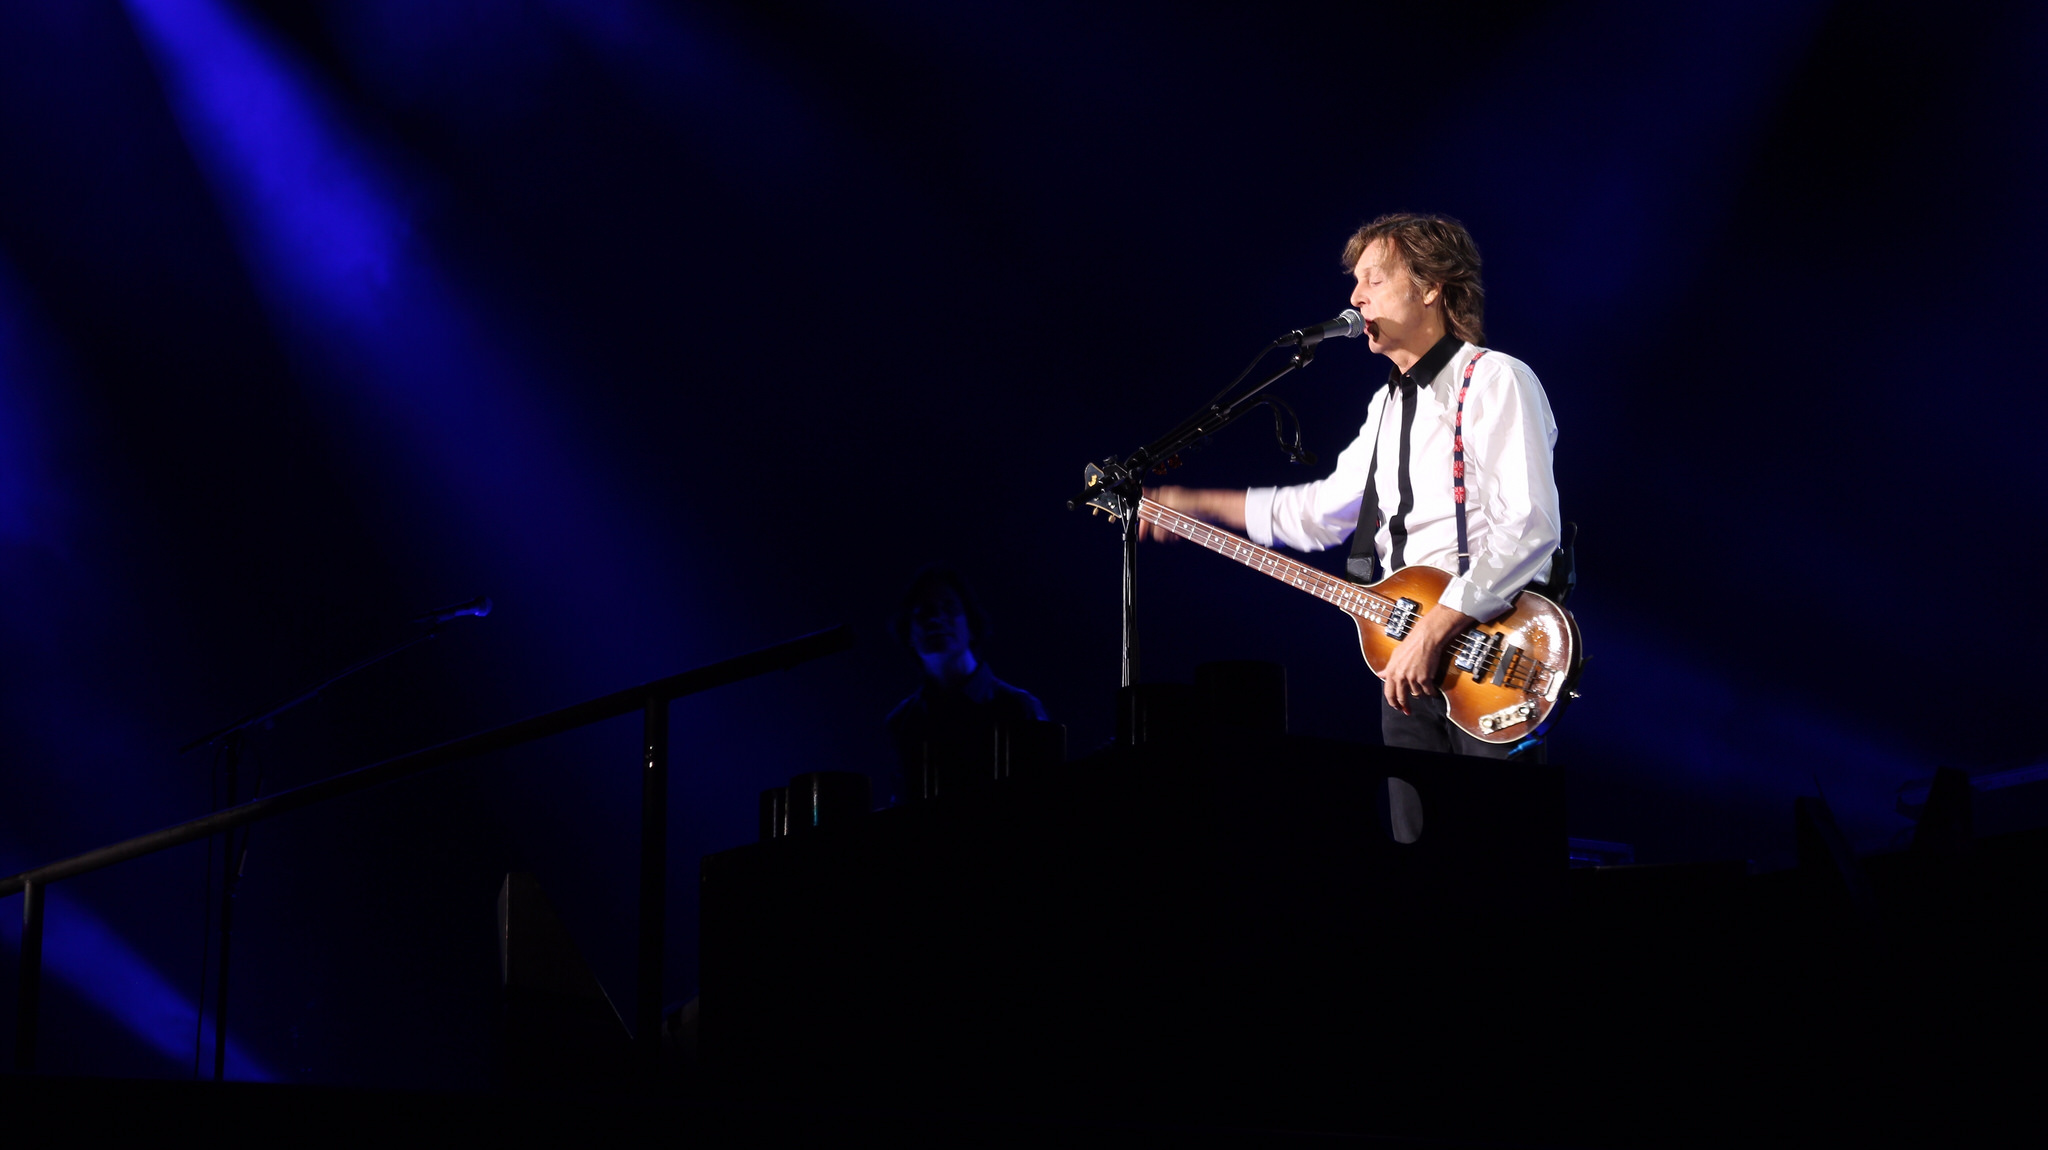 Paul McCartney at Candlestick Park © Phil Sherry/ flickr